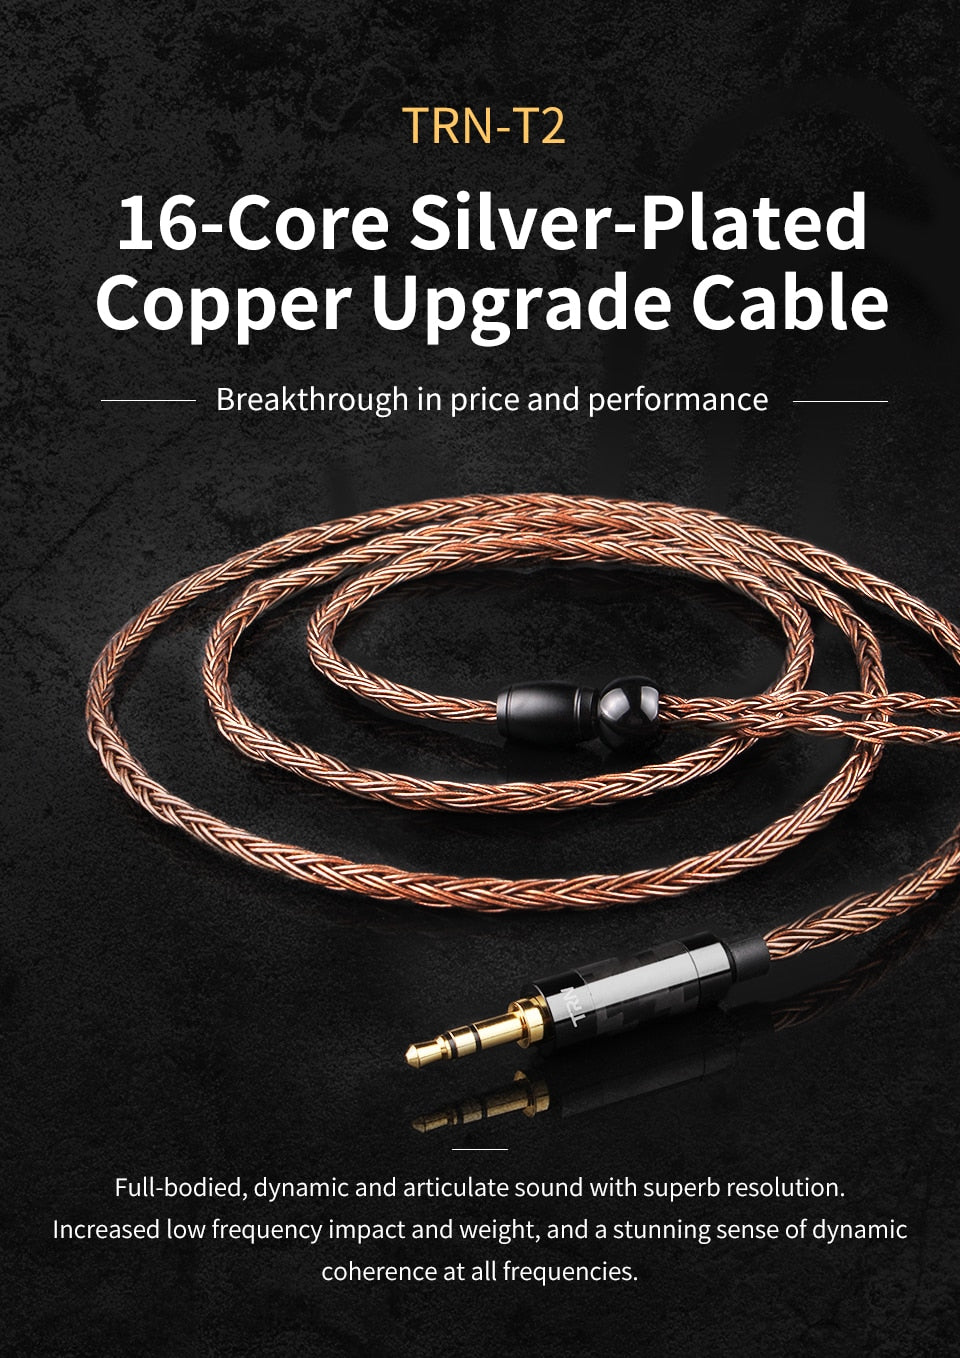 TRN T2 16 Core Silver Plated Copper Upgraded Hand-Woven Cable fits for KZ ZS6 ZS5 ZS4 ZS3 ZSA ED16 Earphones 0.75mm+2.5mm TRRS Jack, Black